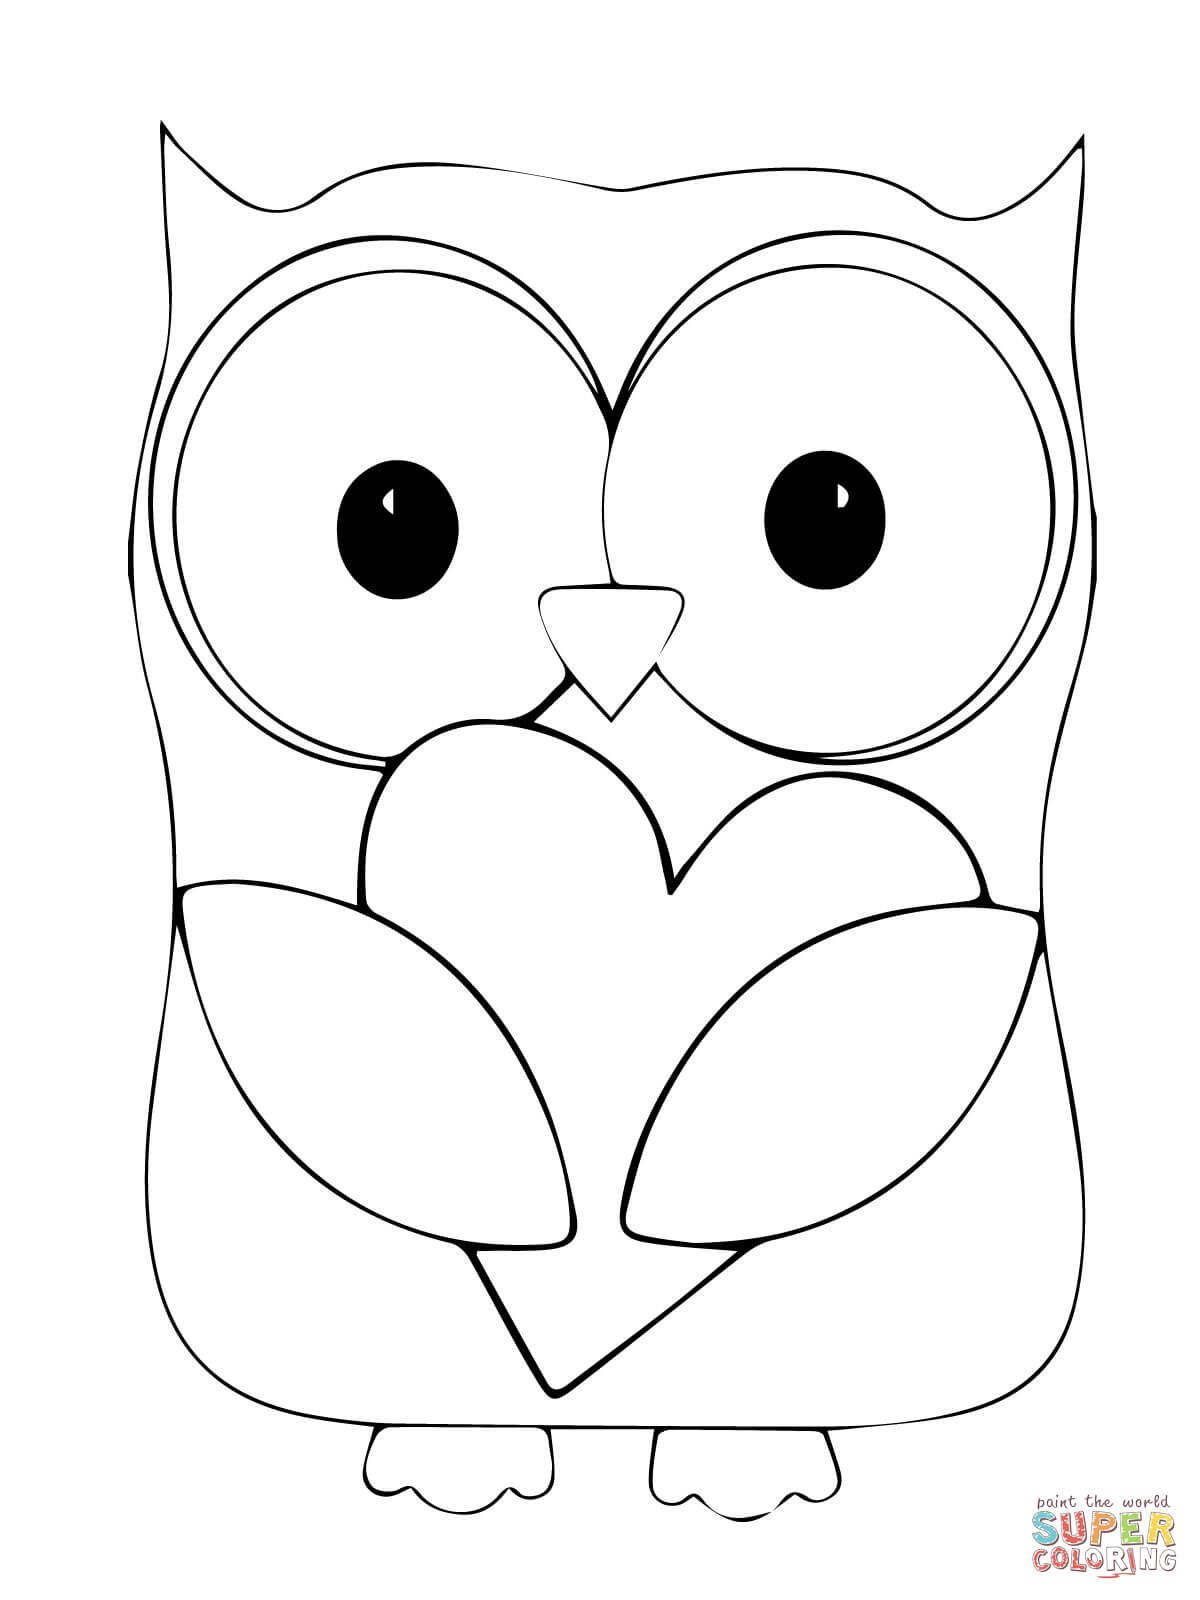 Valentine Day Owl Hugging A Heart Coloring Page From Owls Category Select From 29179 Printable C Owl Coloring Pages Heart Coloring Pages Animal Coloring Pages